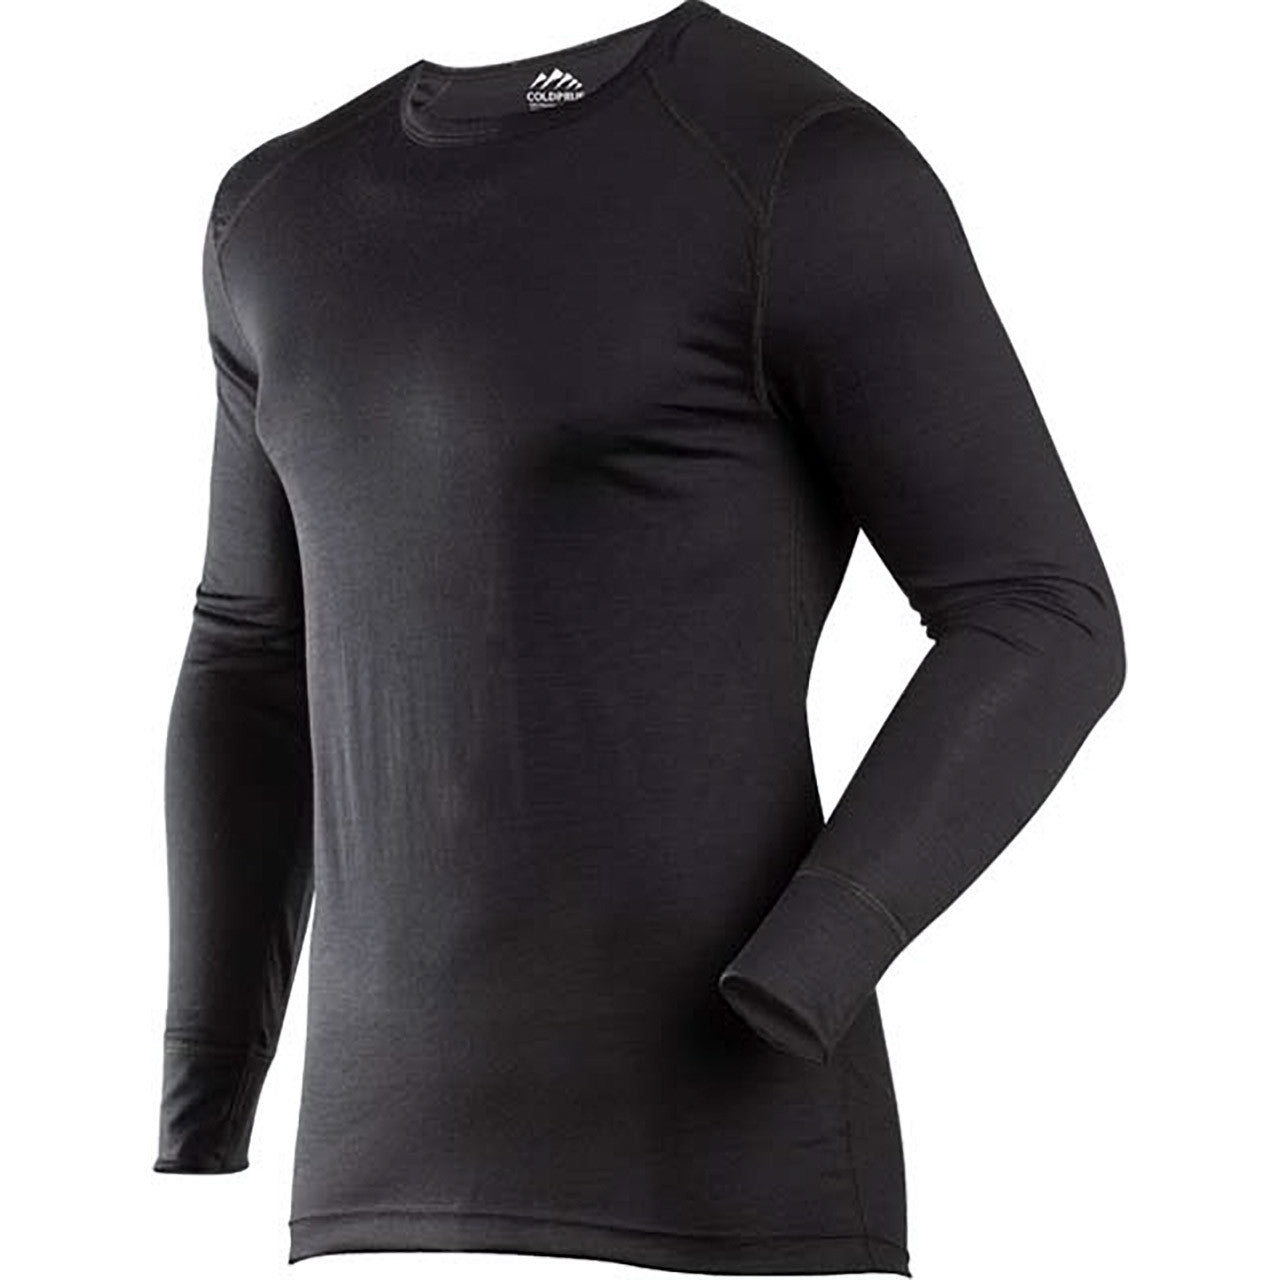 ColdPruf Classic Merino Wool Men's Base Layer Top